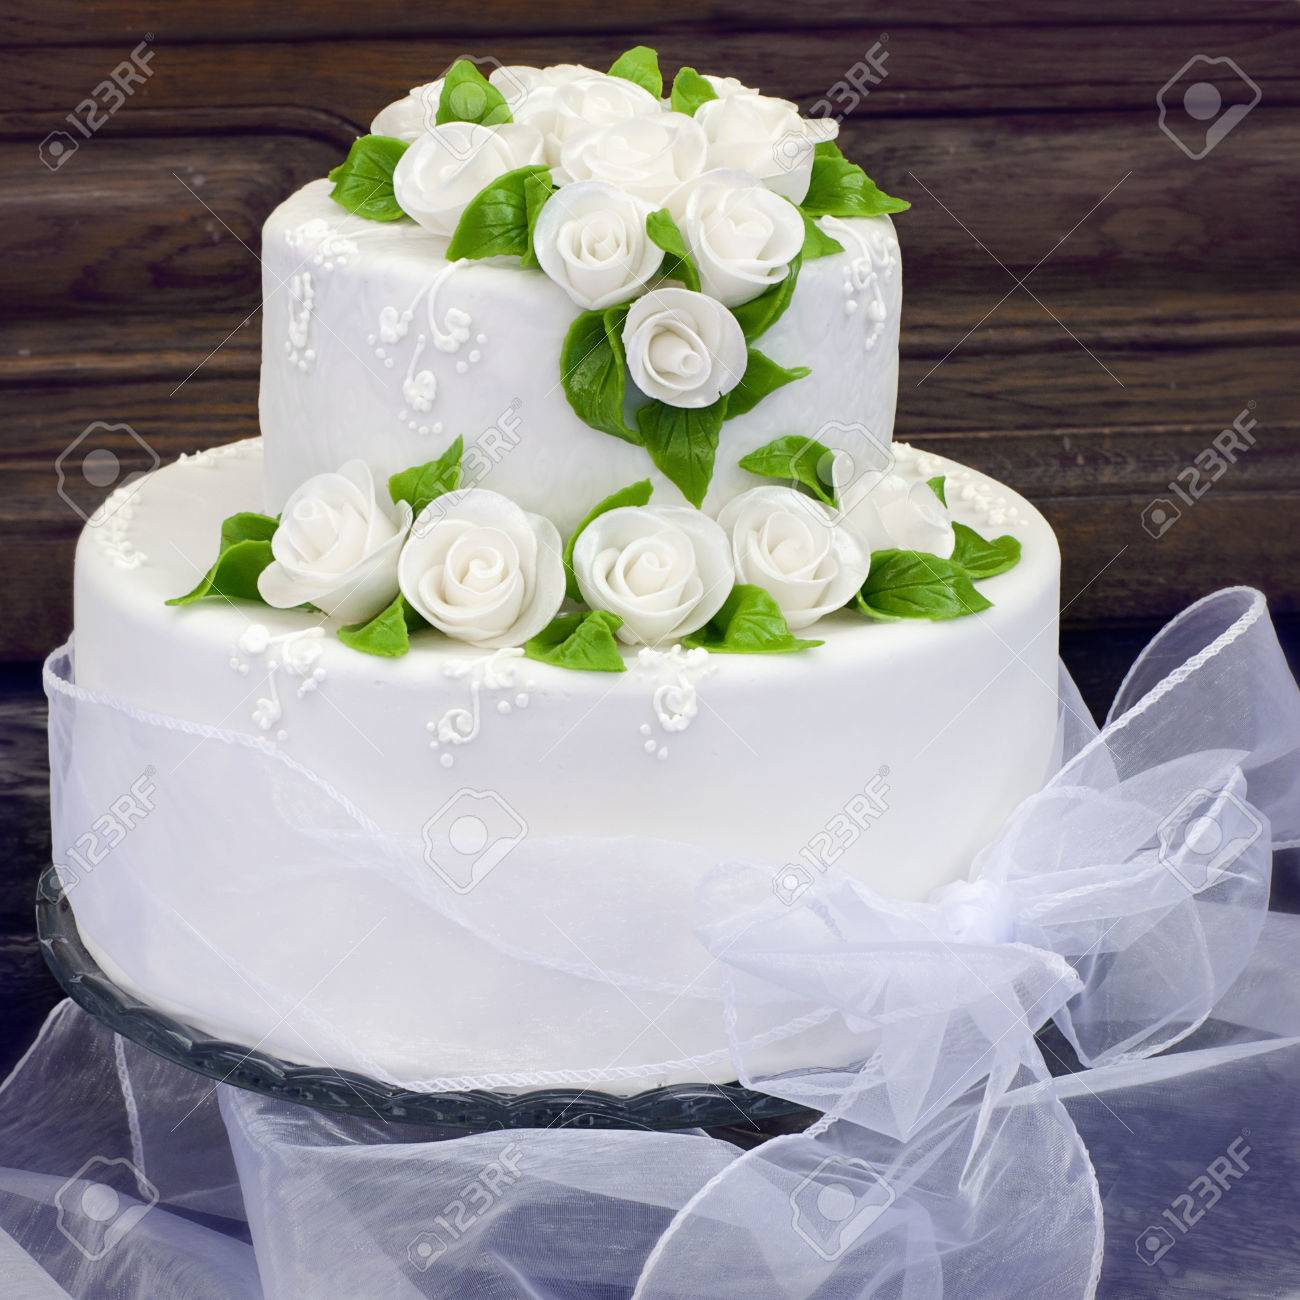 Wedding Cake With White Frosting Or Icing Decorated With White ...